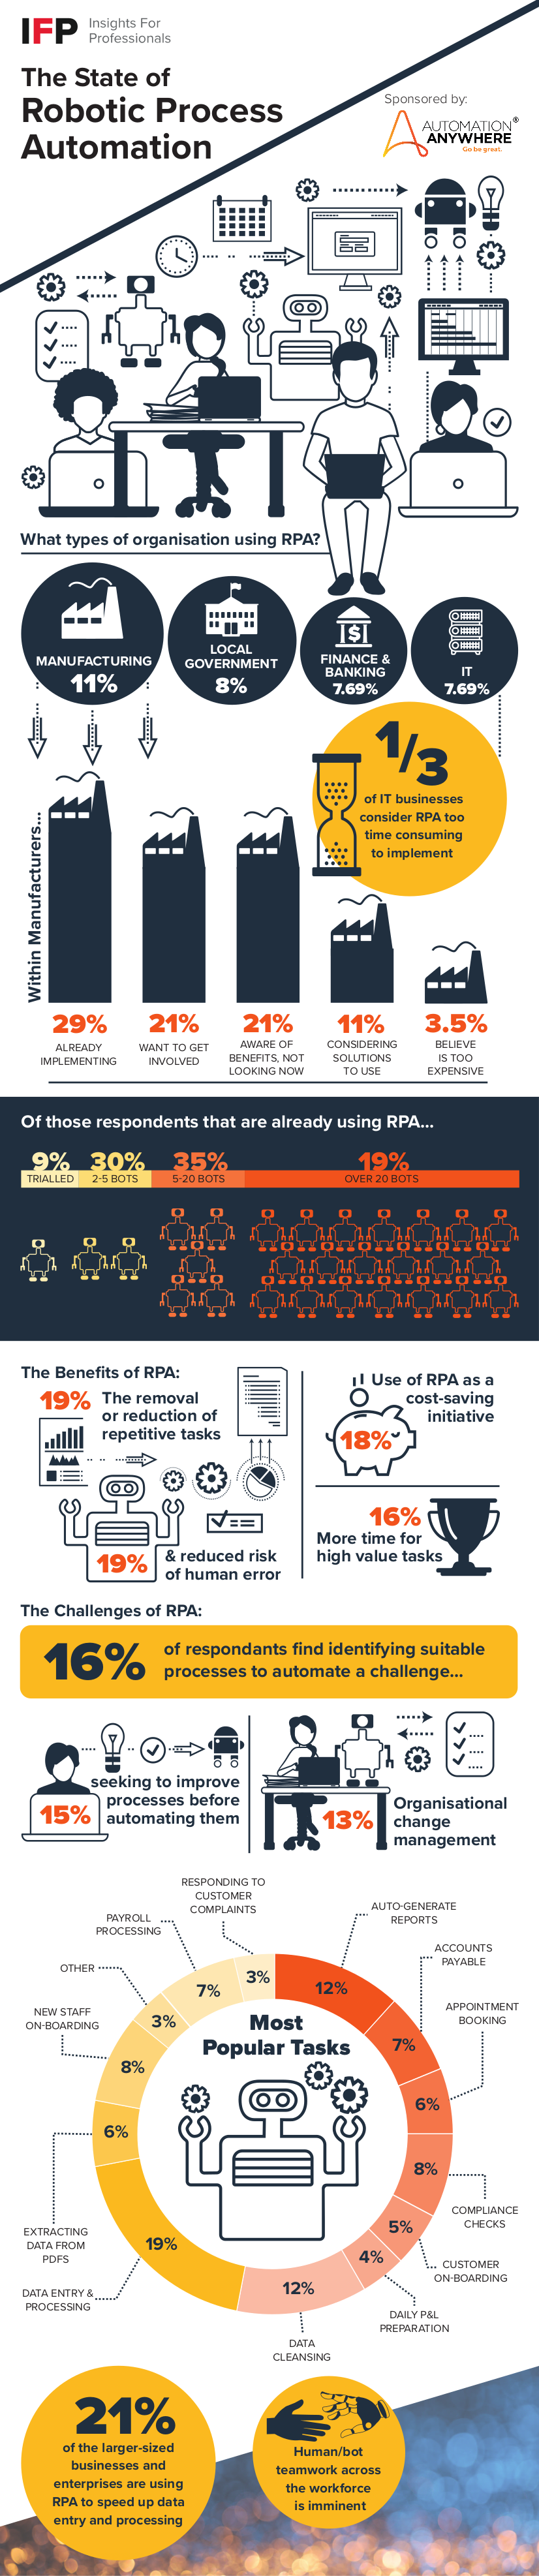 Robotic Process Automation Infographic - IFP